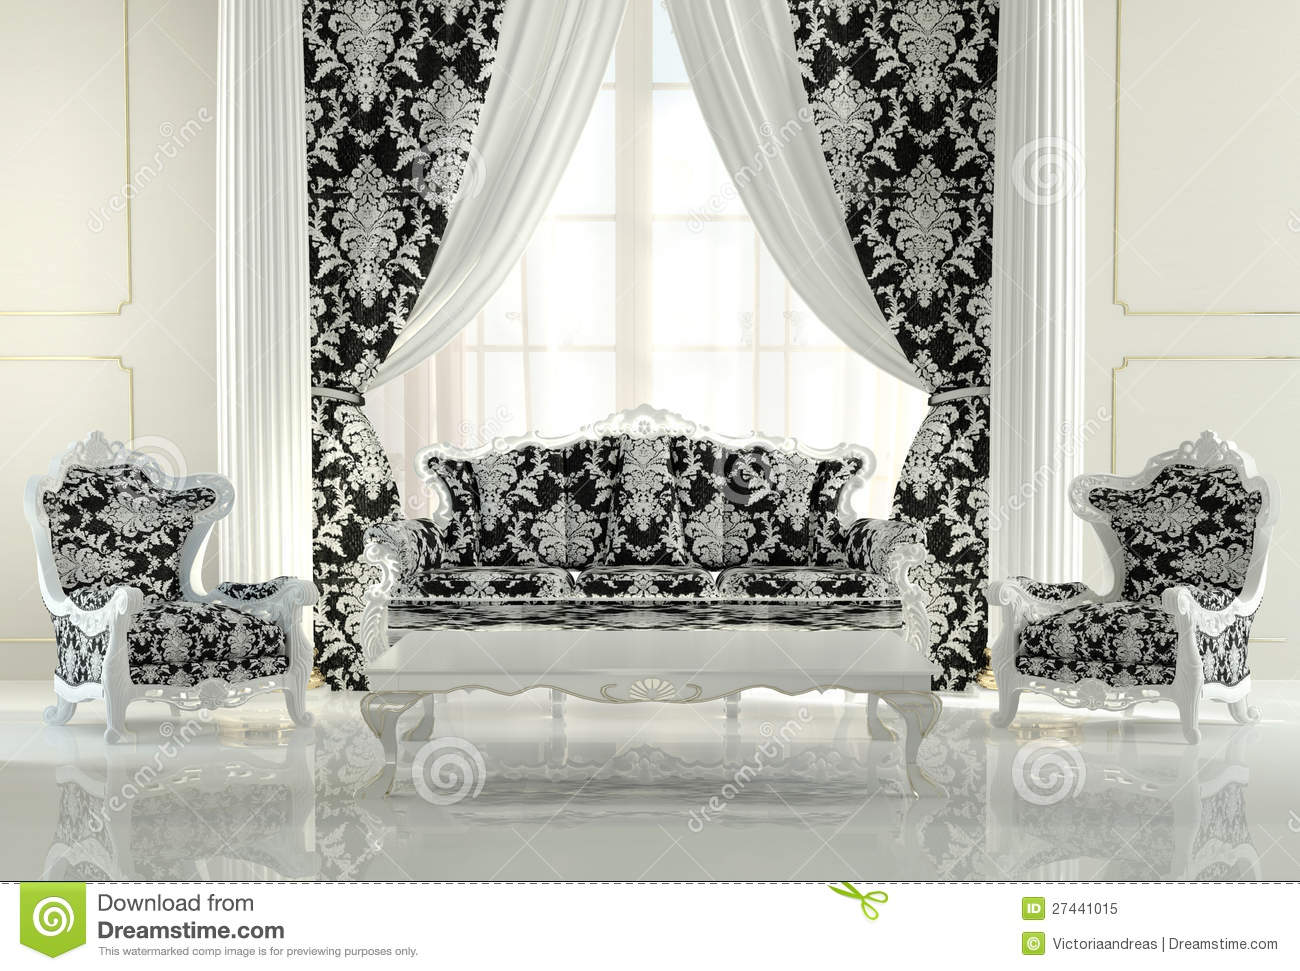 Modern furniture in baroque design royalty free stock for French furniture designers modern